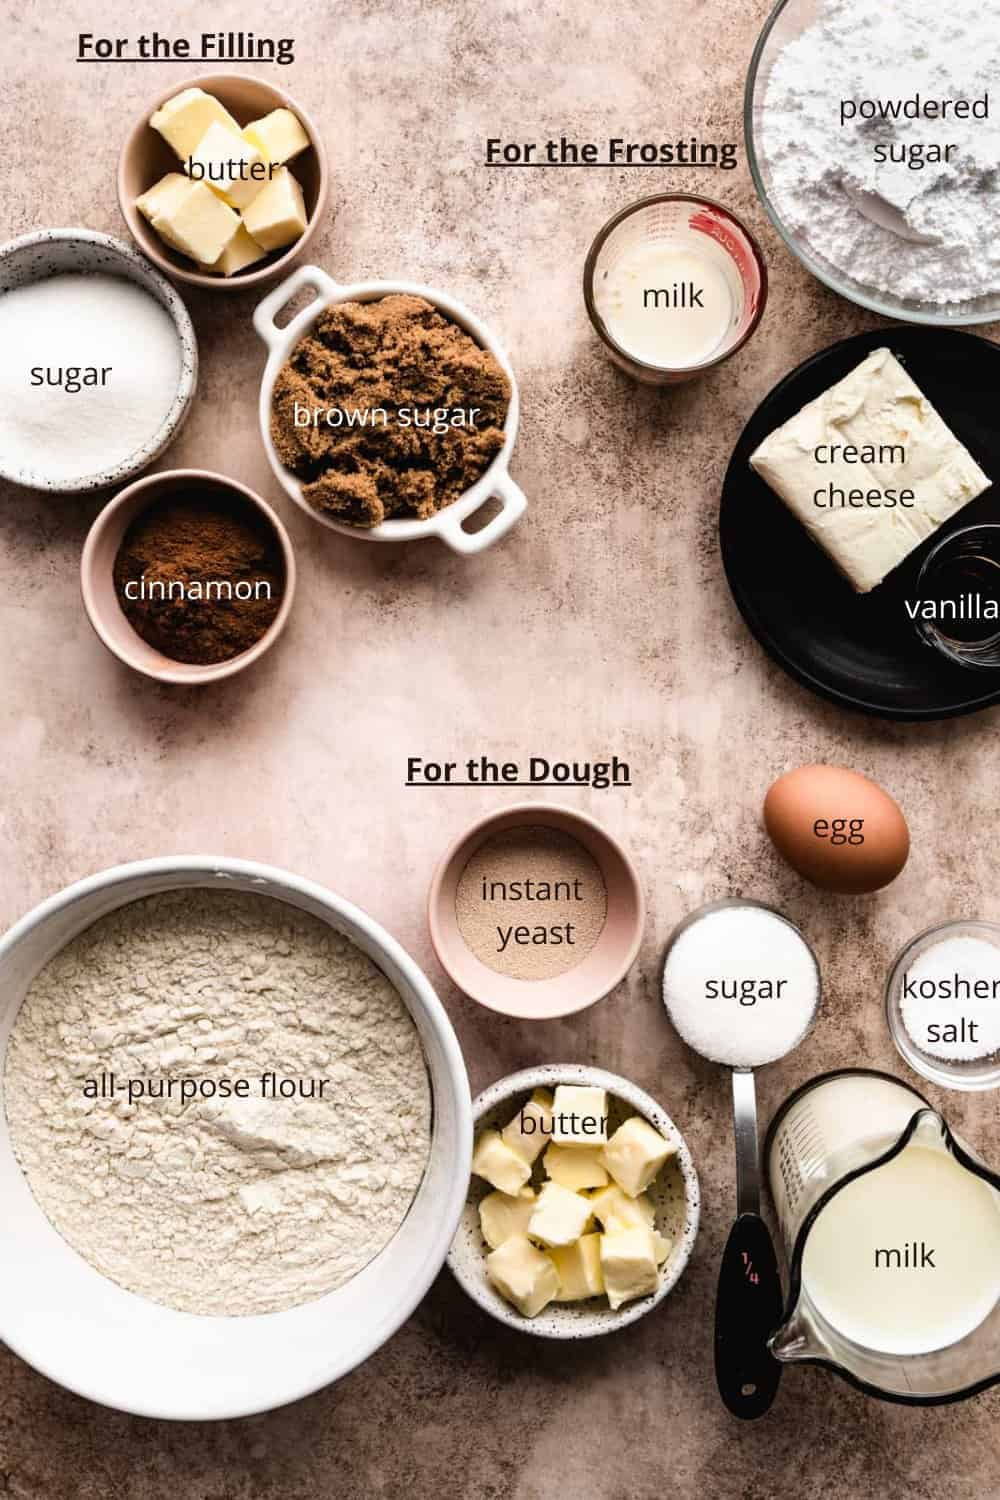 ingredients needed to make cinnamon rolls